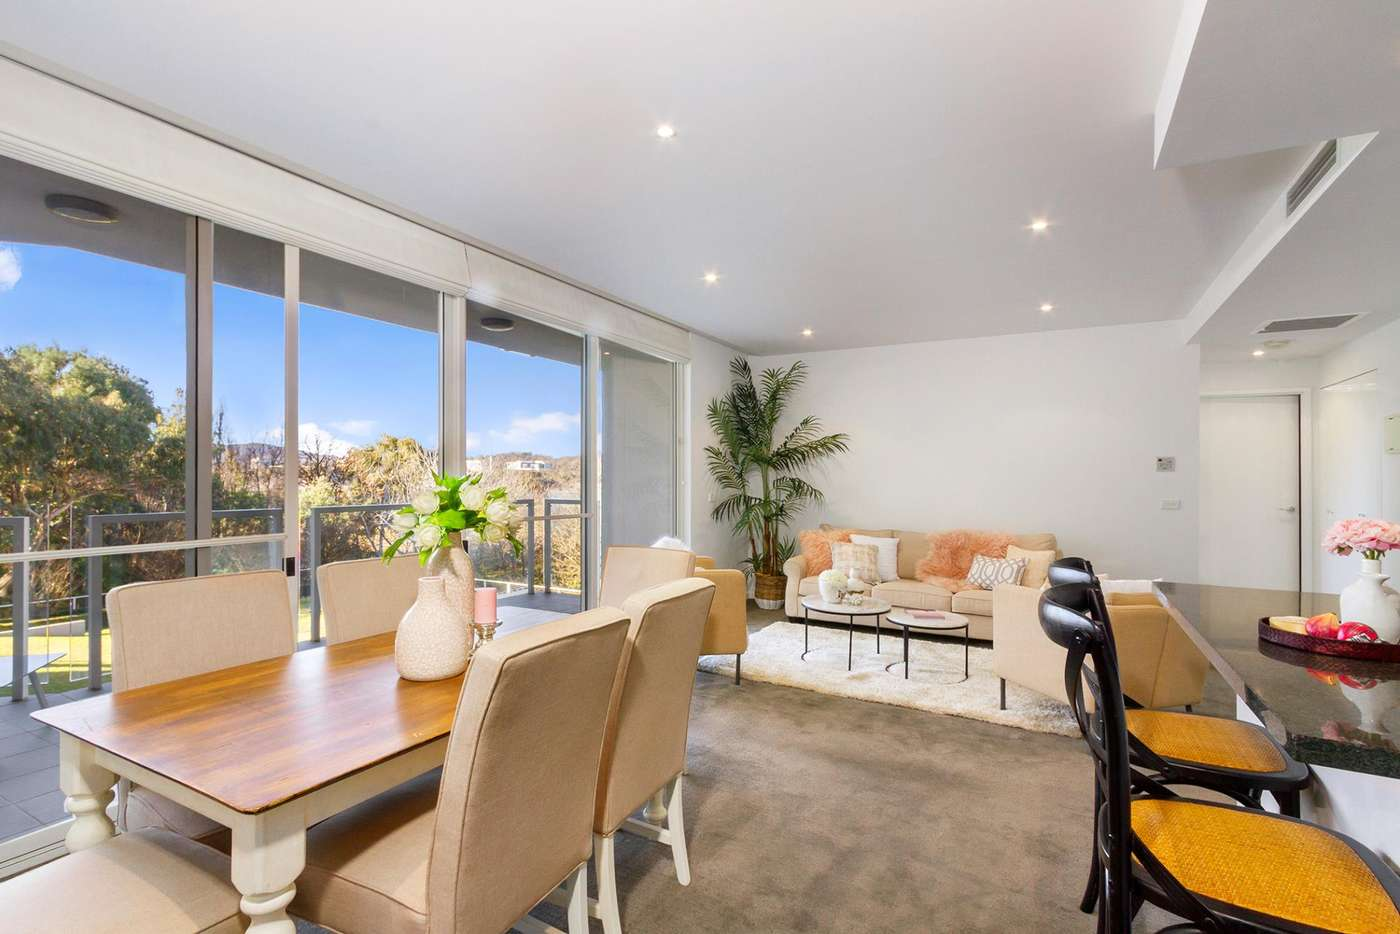 Fifth view of Homely apartment listing, 31/41 Blackall Street, Barton ACT 2600